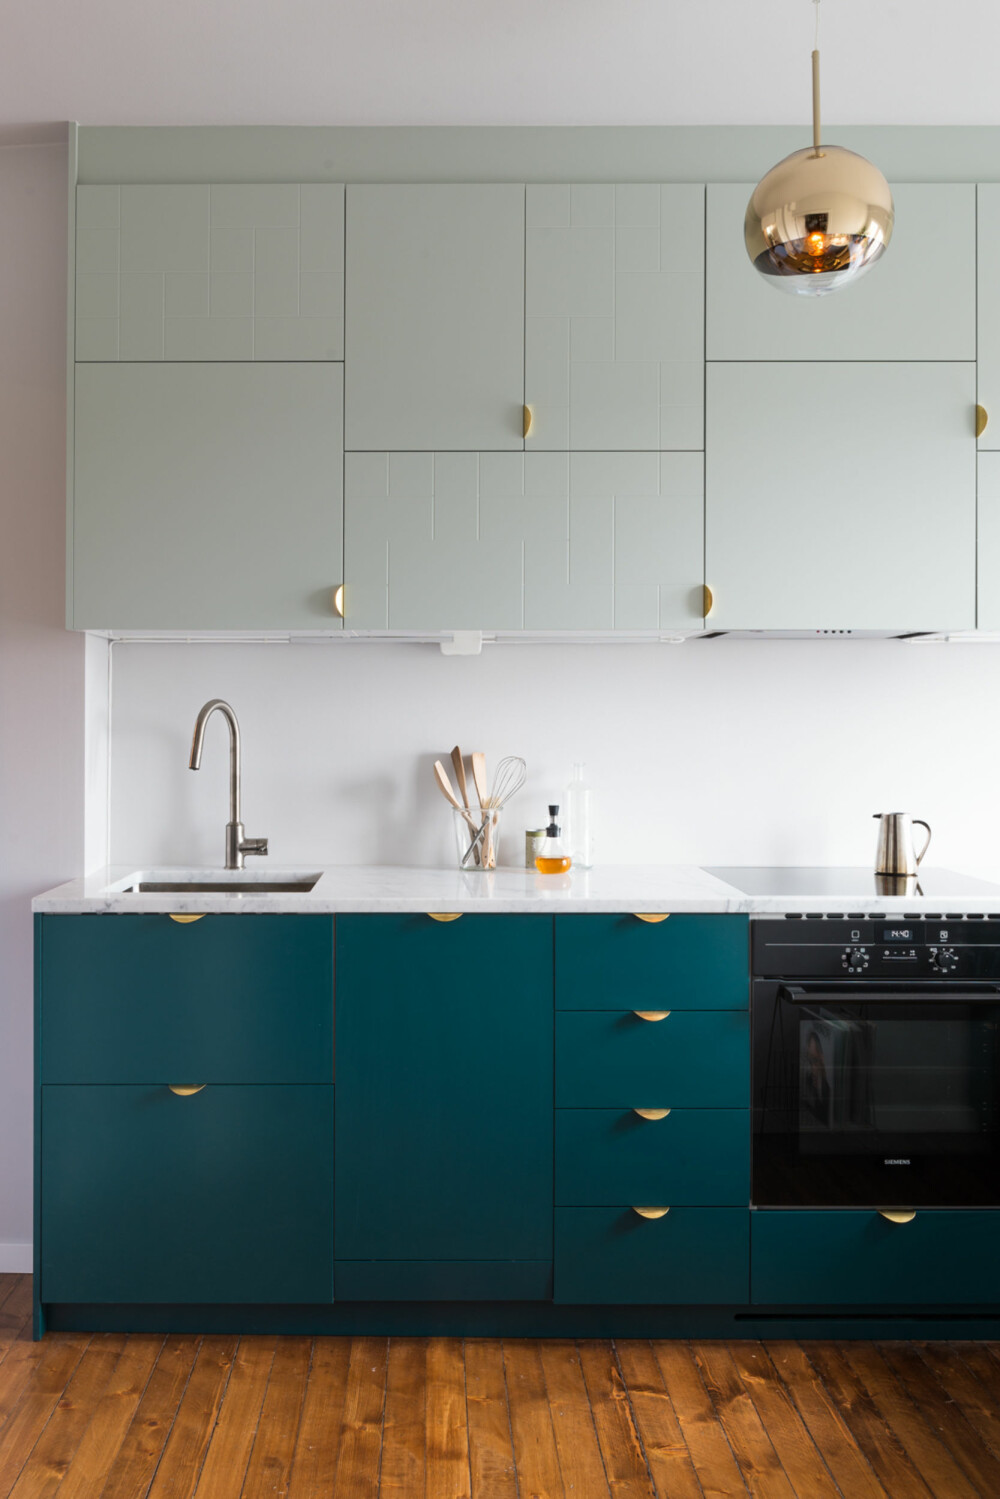 The Top 5 Kitchen Trends For 2019 Color Cabinets And Copper